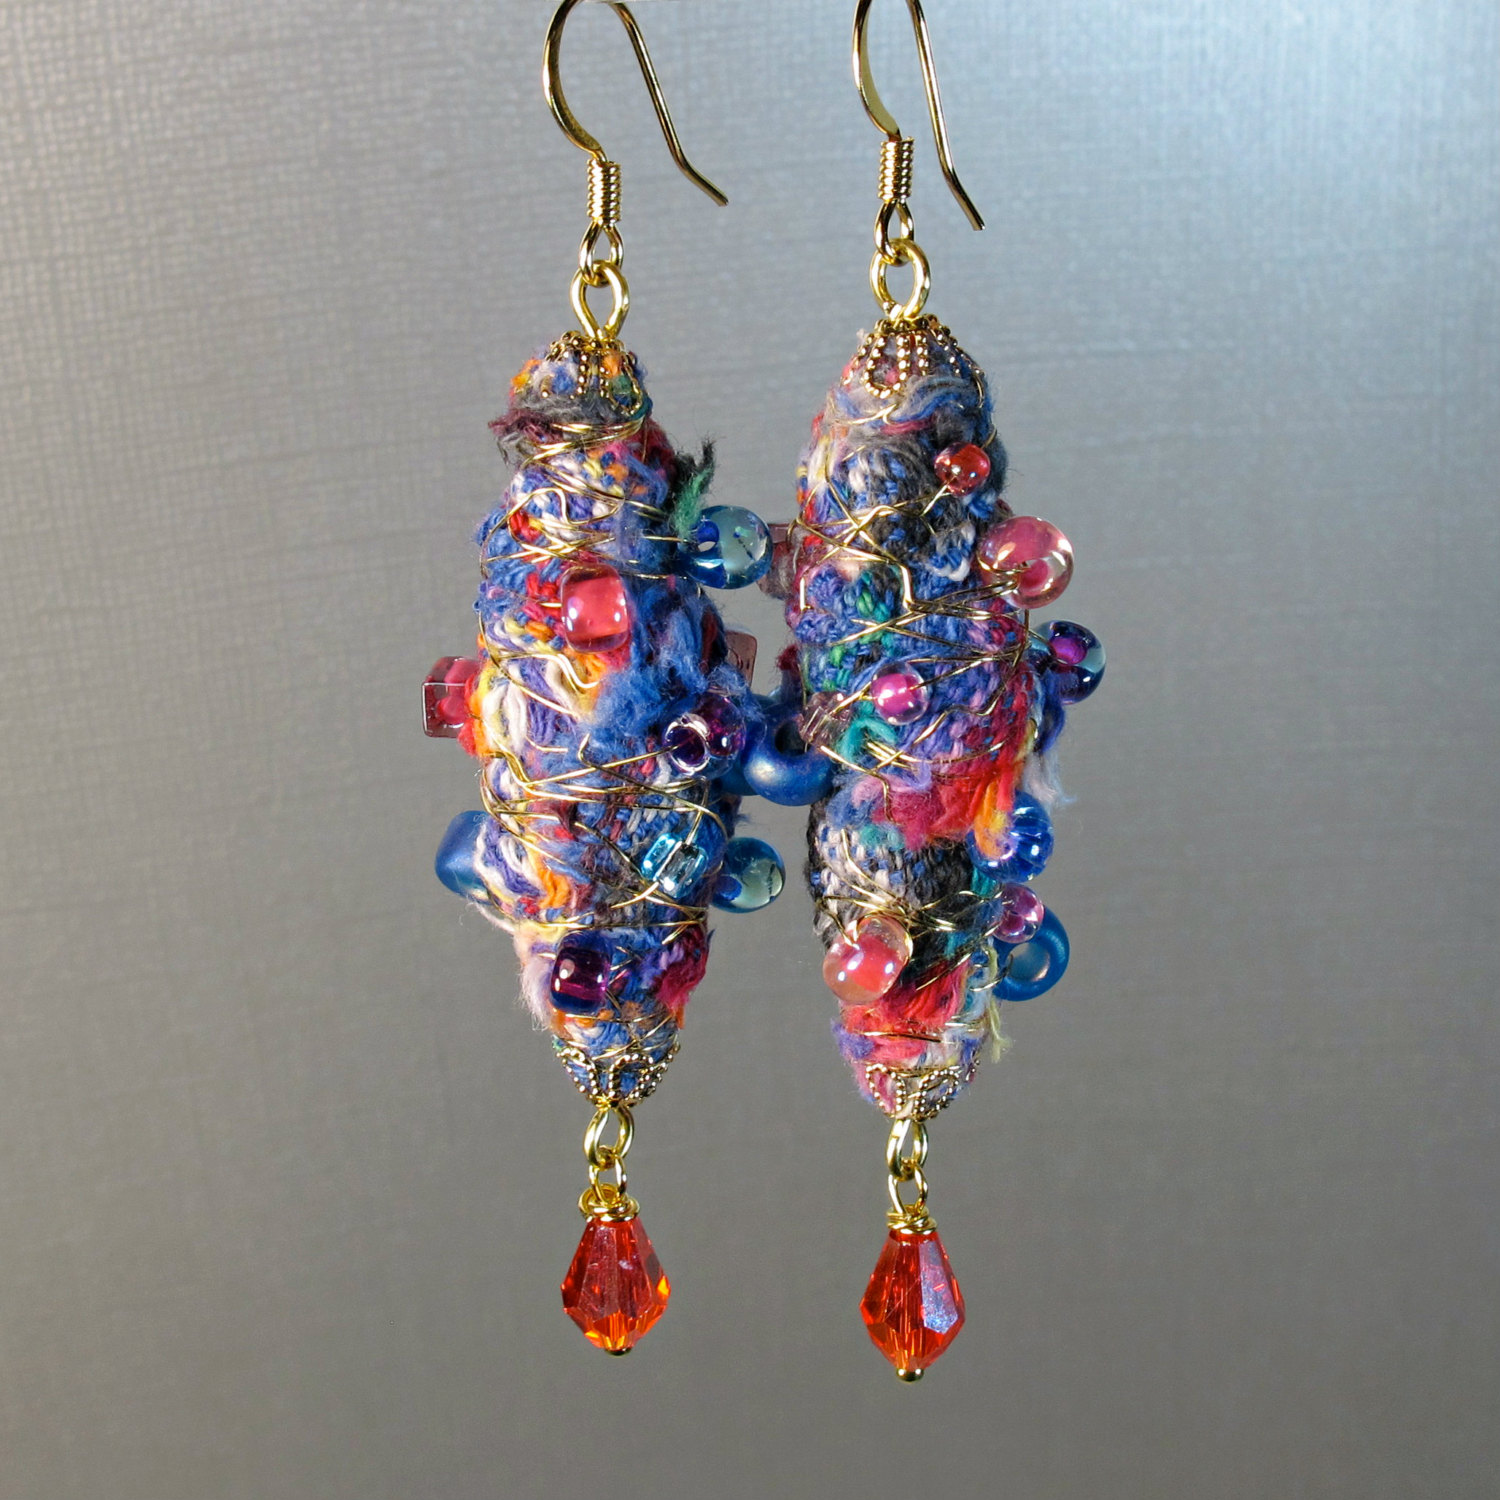 Fiber Art Jewelry – Wire Wrapped Fabric Earrings and Necklaces ...